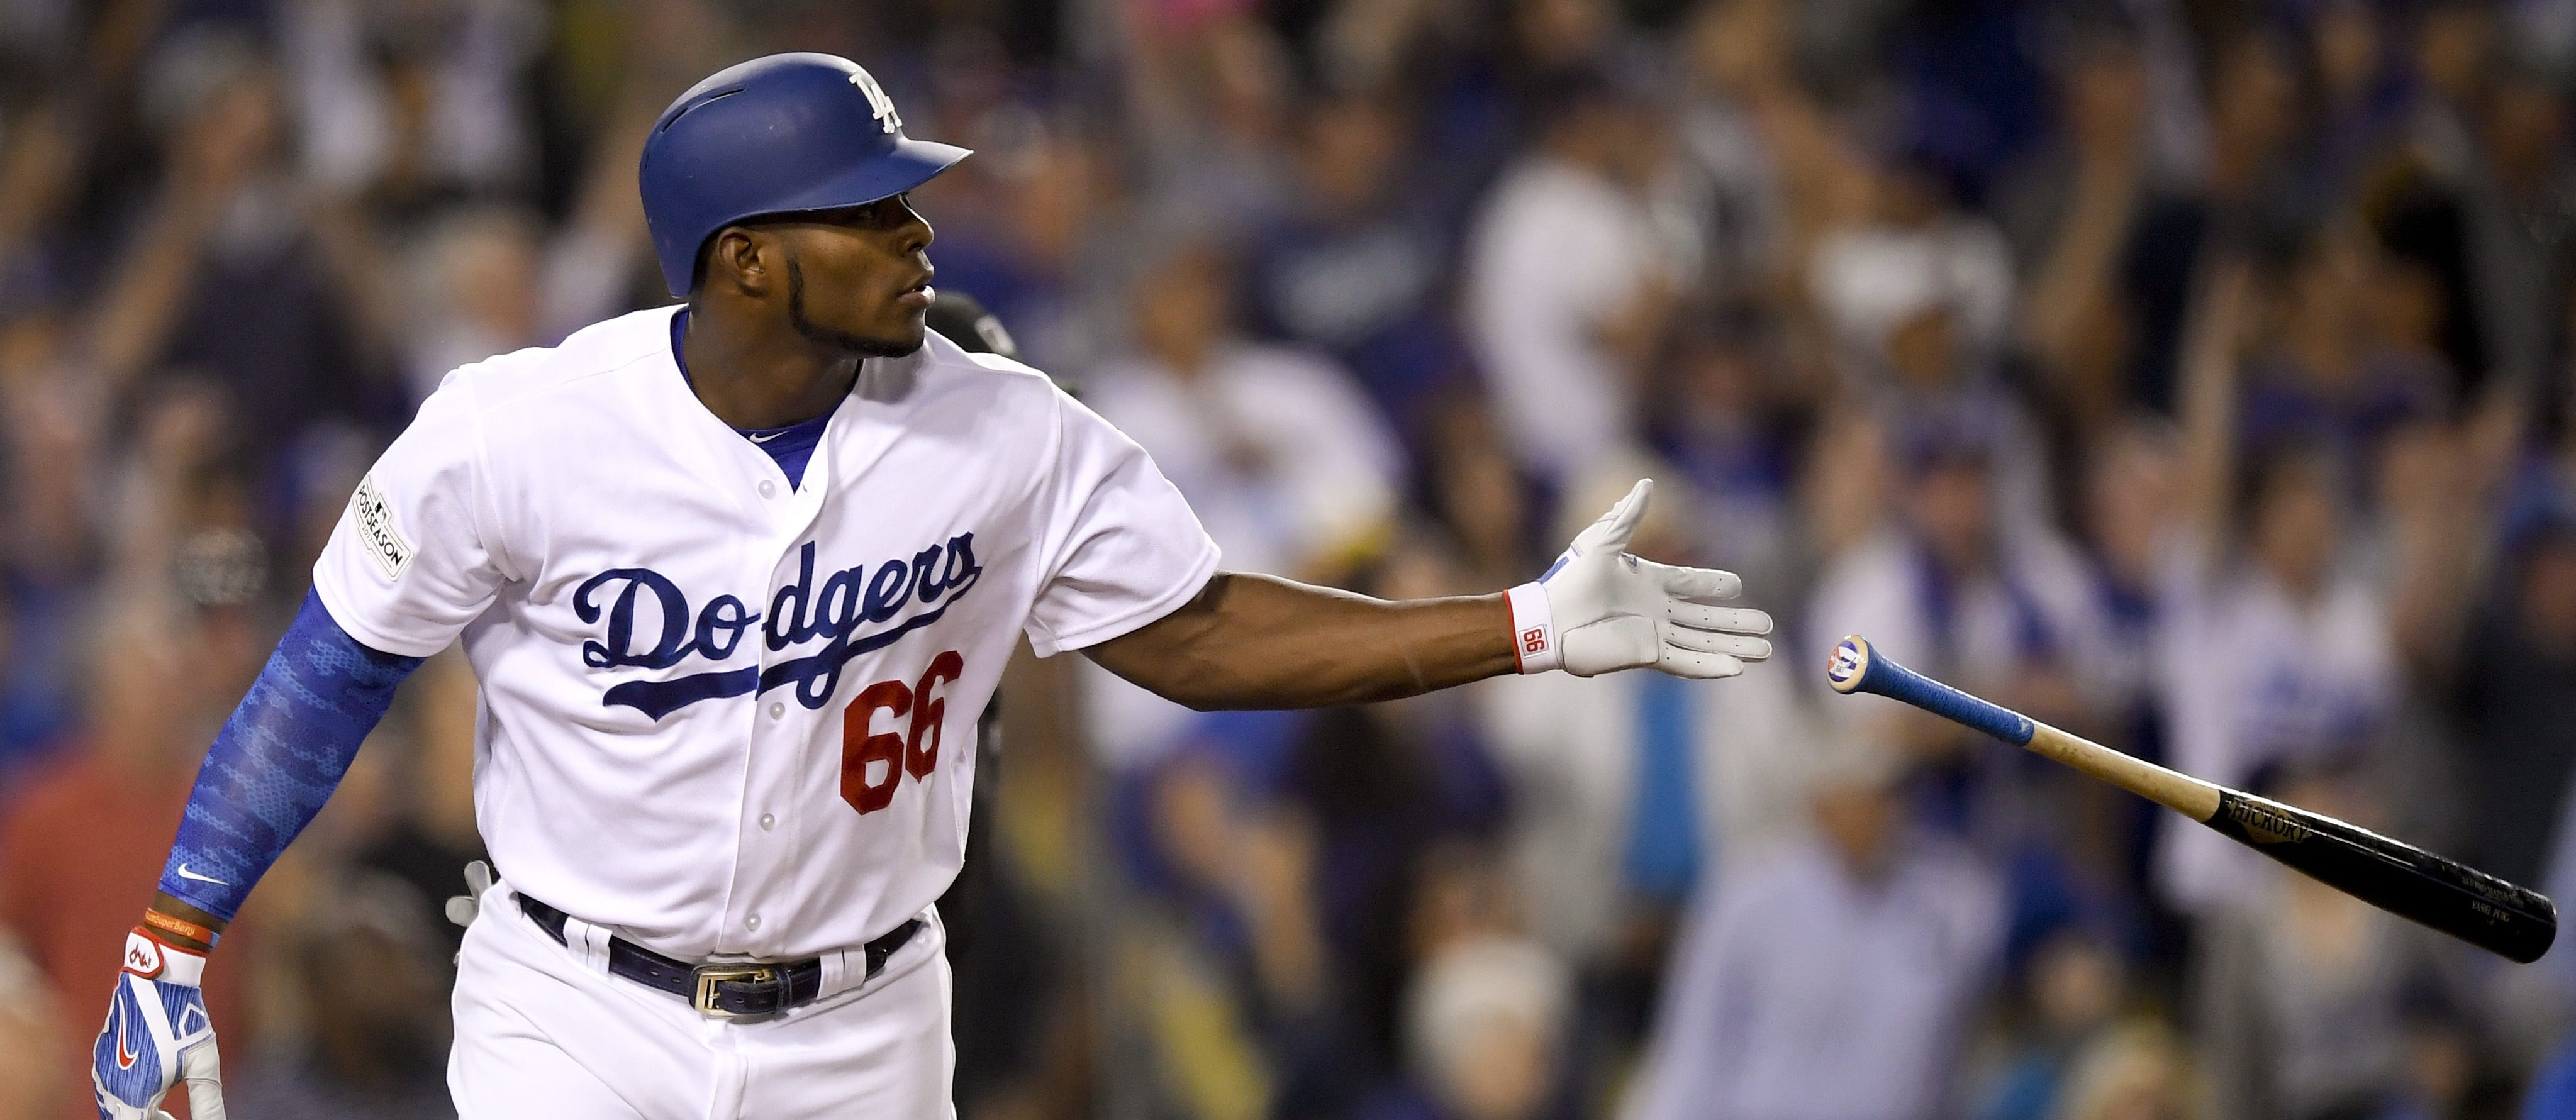 Dodgers Star Yasiel Puig Flips Bats, Critics Flip Lids After NLCS Game 1 Heroics